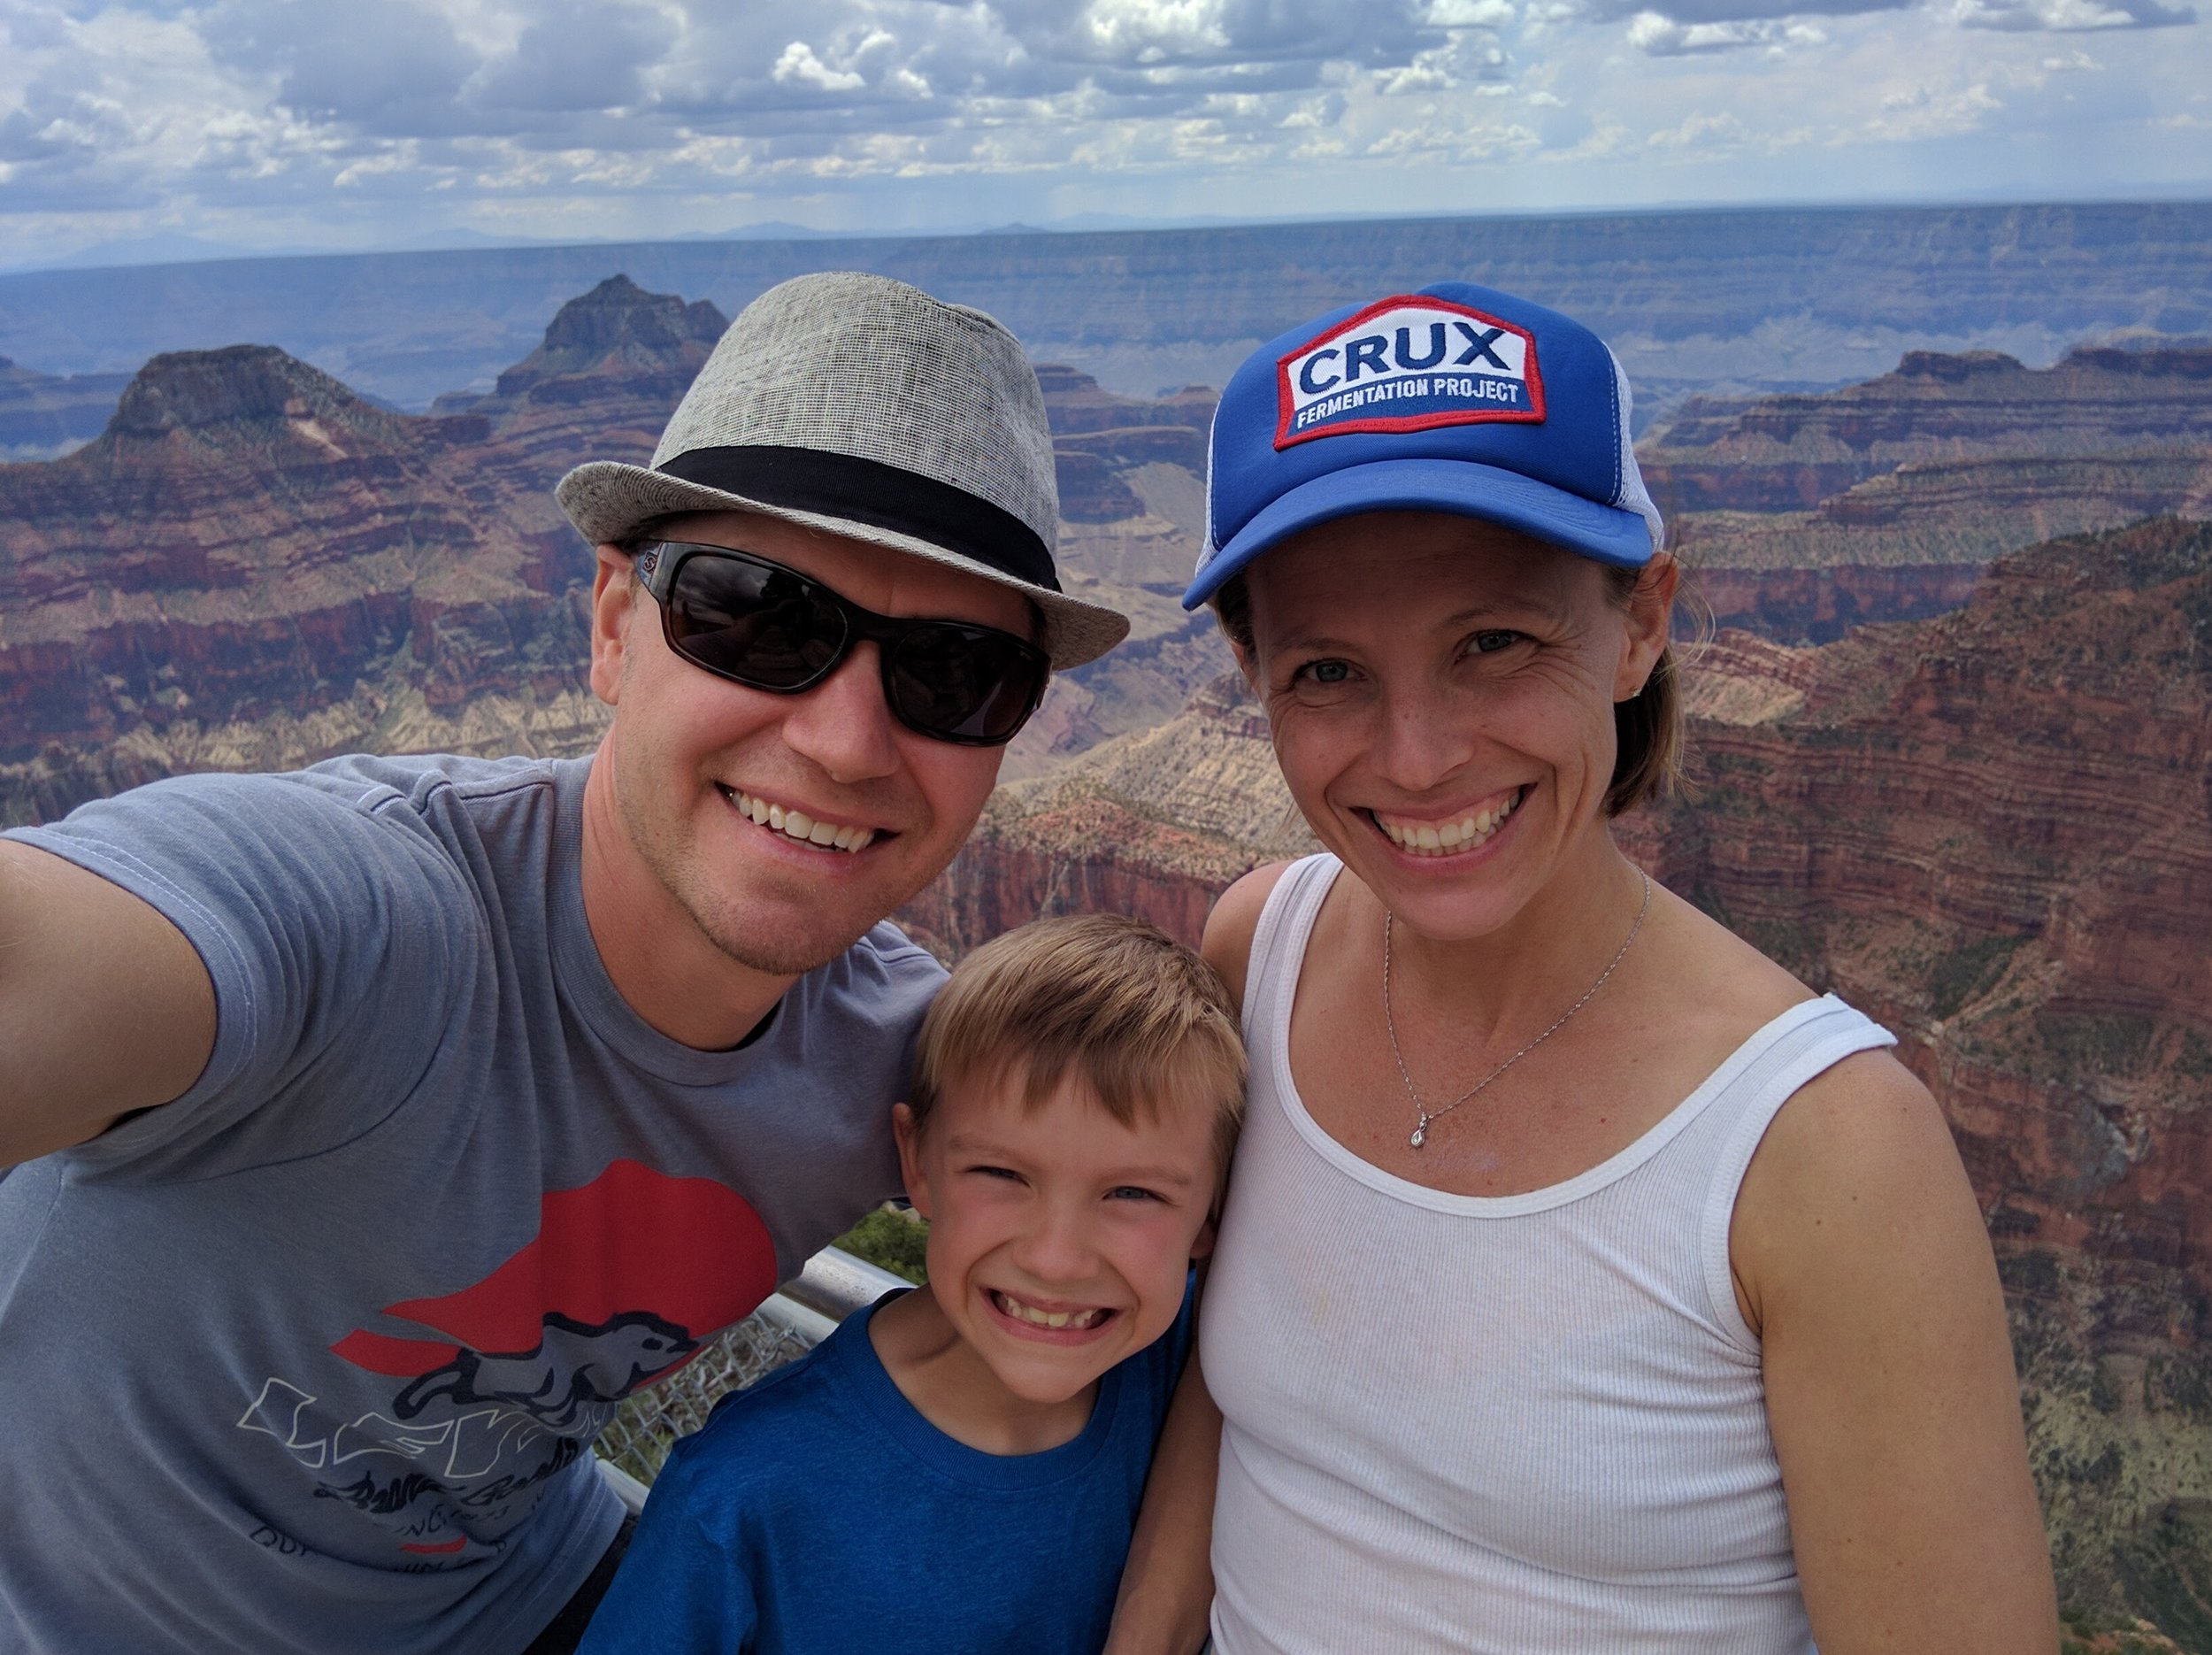 Our first visit to the Grand Canyon!